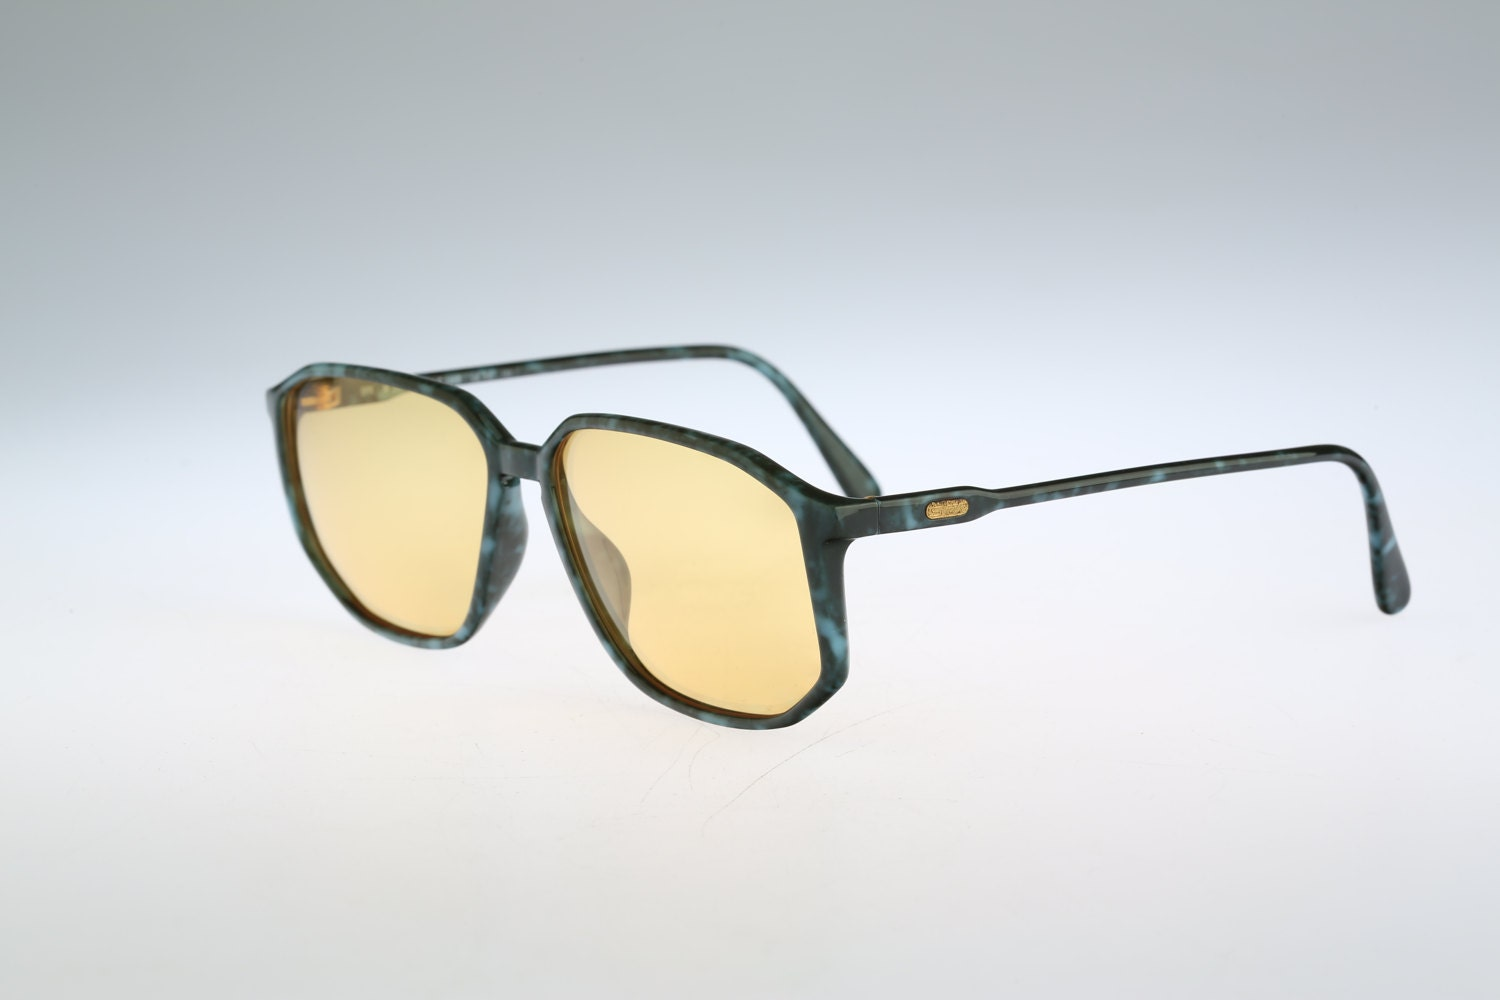 Silhouette M 2711 20 C 1480 Vintage 80s tinted yellow lenses